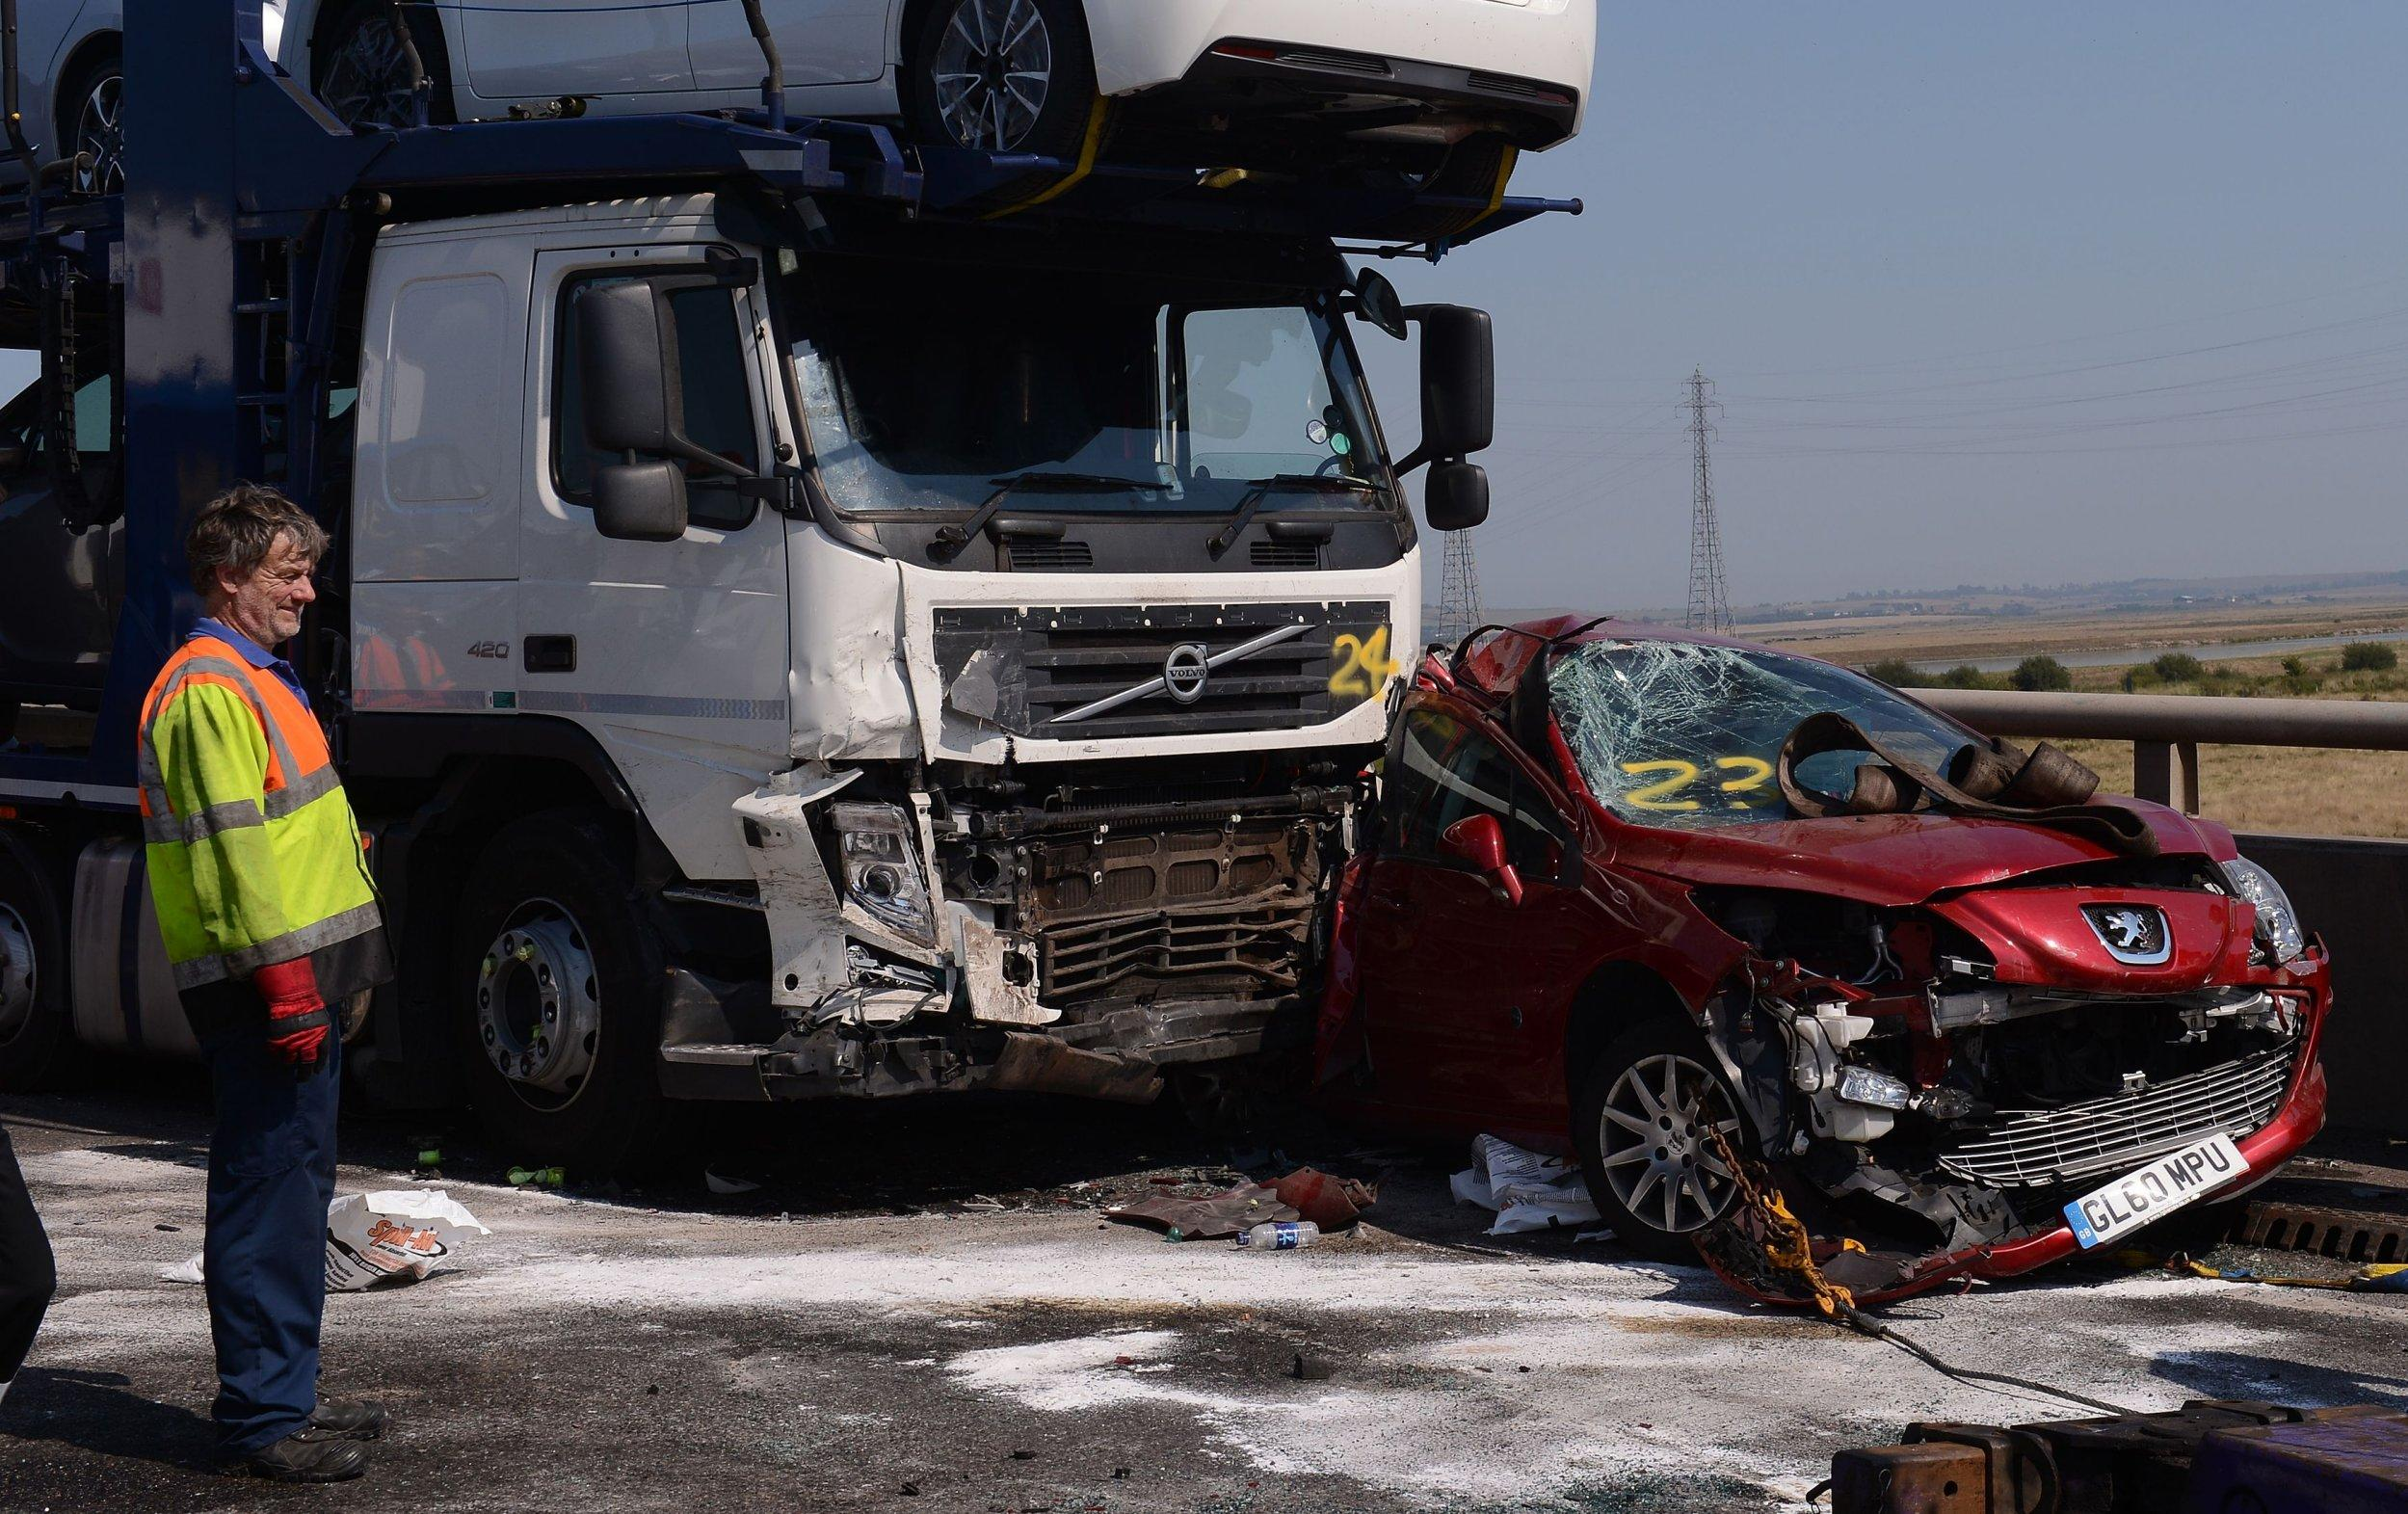 More than 100 cars involved in pile-up on Sheppey Bridge